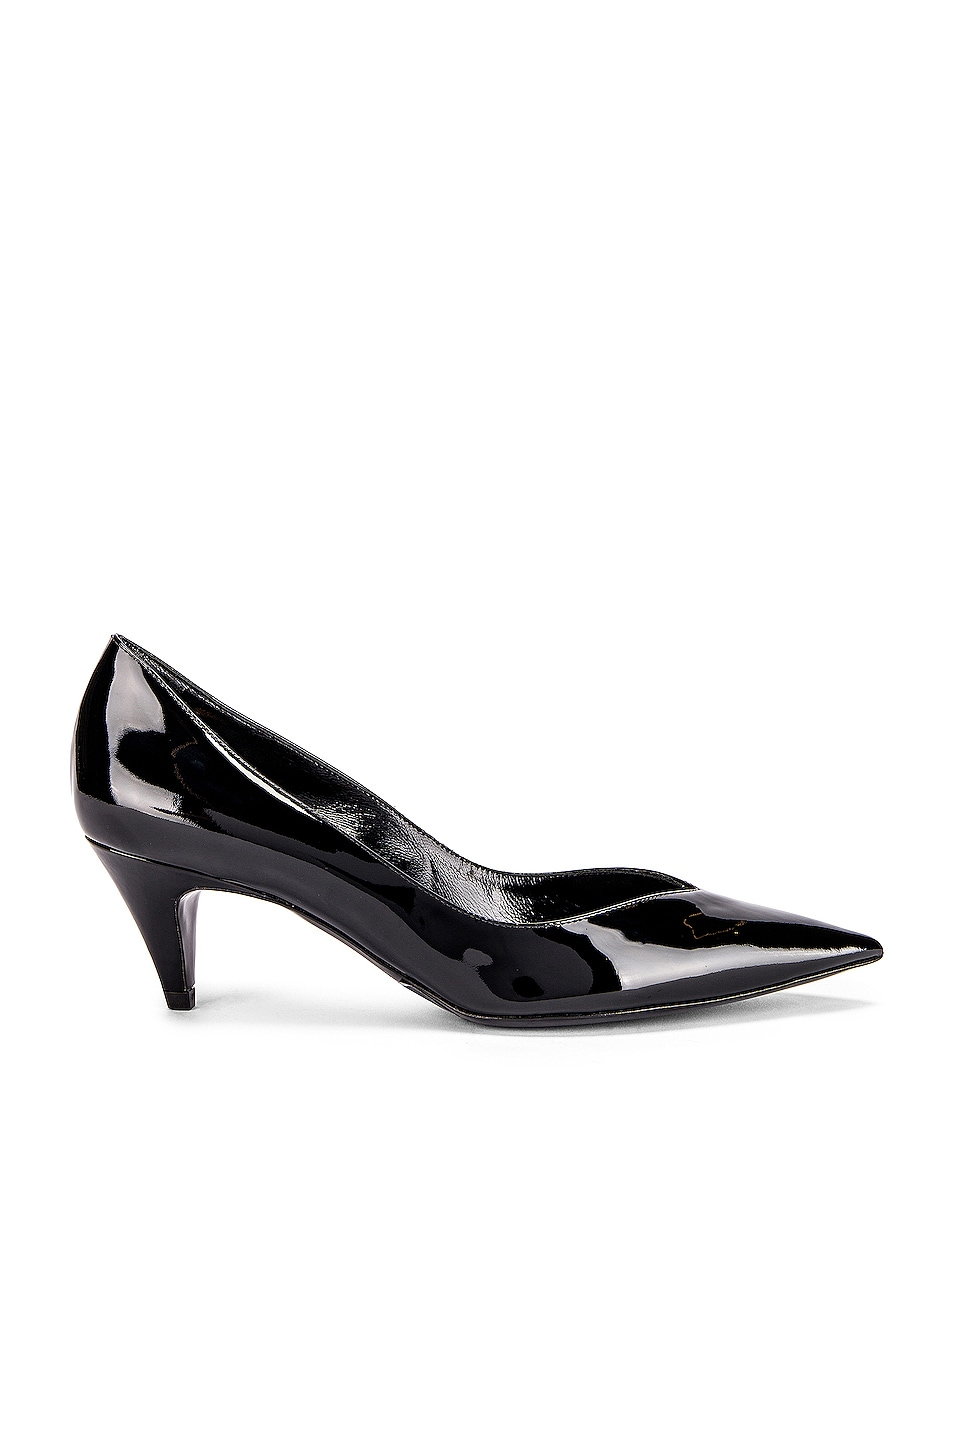 Image 1 of Saint Laurent Kiki Kitten Heels in Black